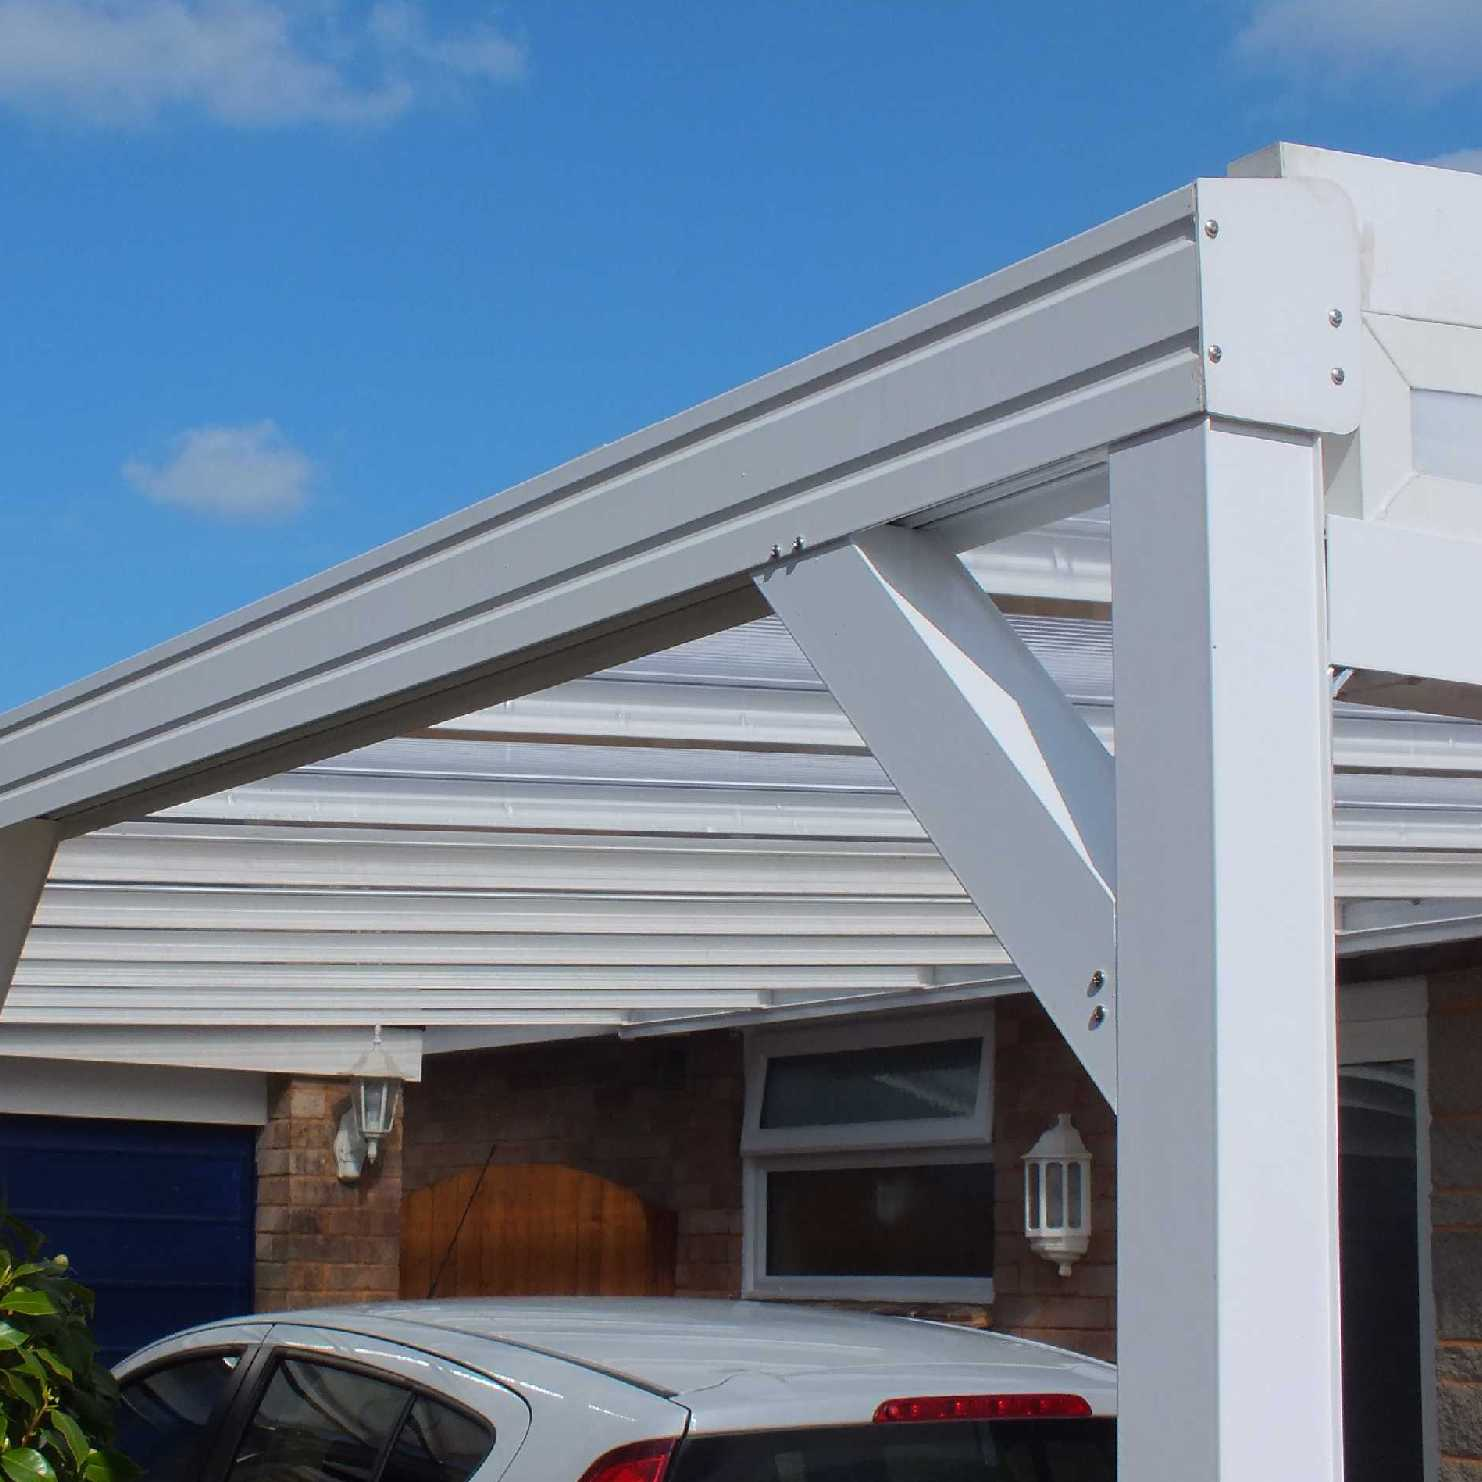 Buy Omega Smart Lean-To Canopy with 16mm Polycarbonate Glazing - 9.6m (W) x 4.5m (P), (5) Supporting Posts online today